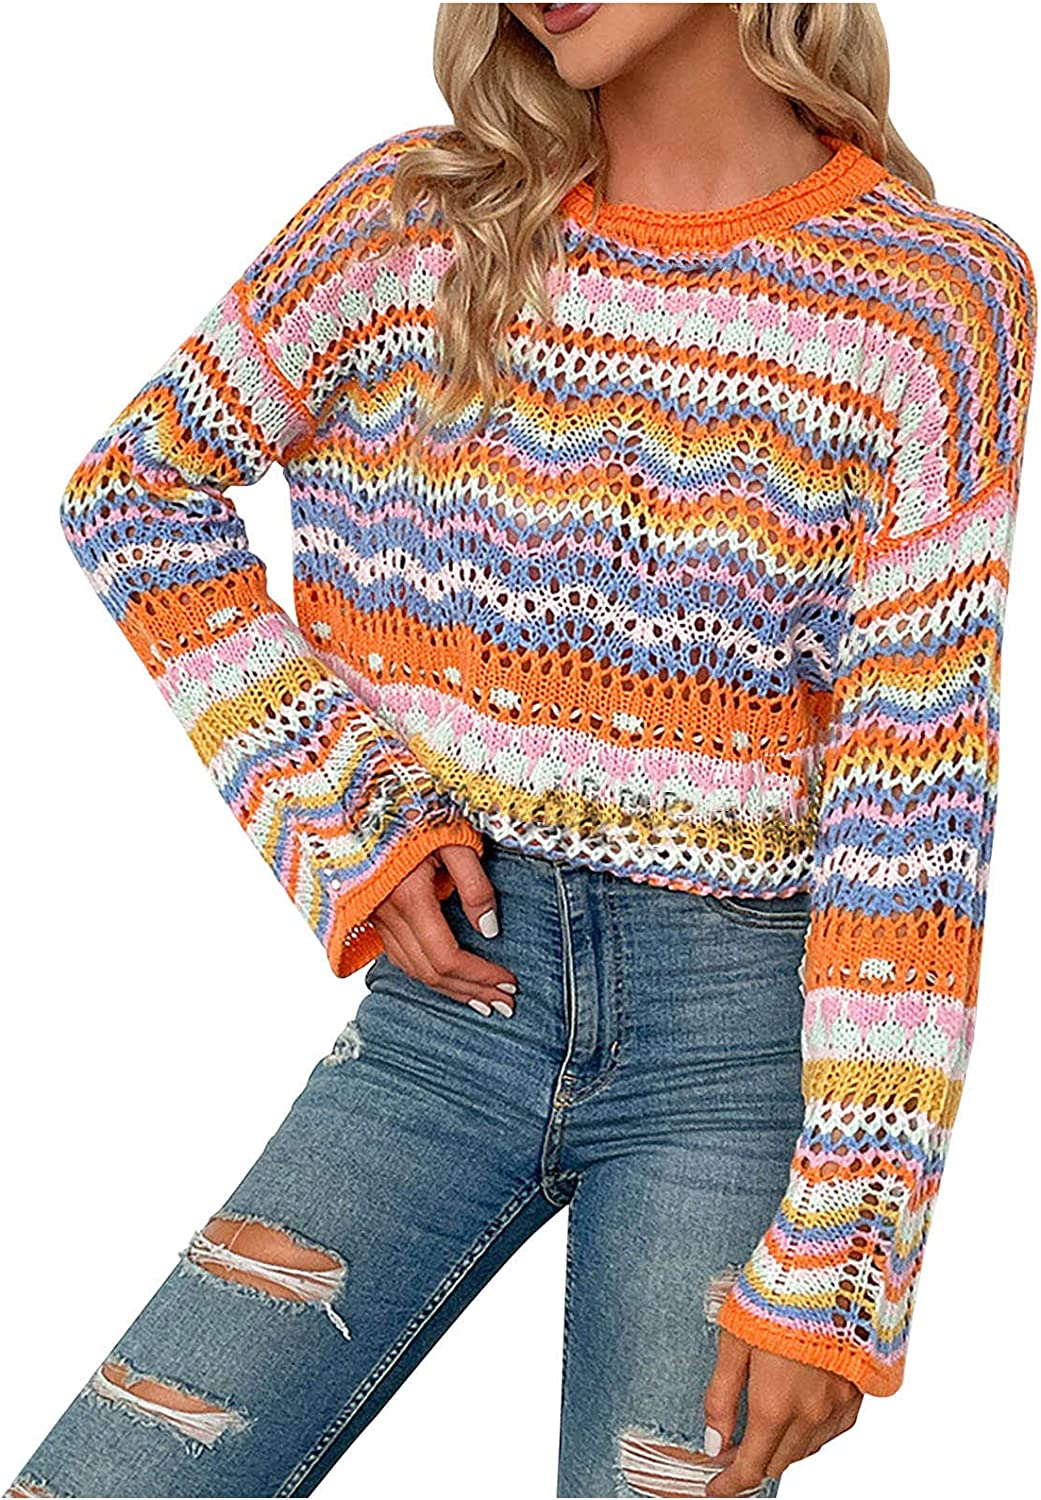 Women's Long Sleeve Hollow Out Lightweight Crochet Knit Sweater Casual Crew Neck Stripe Color Block Loose Pullover